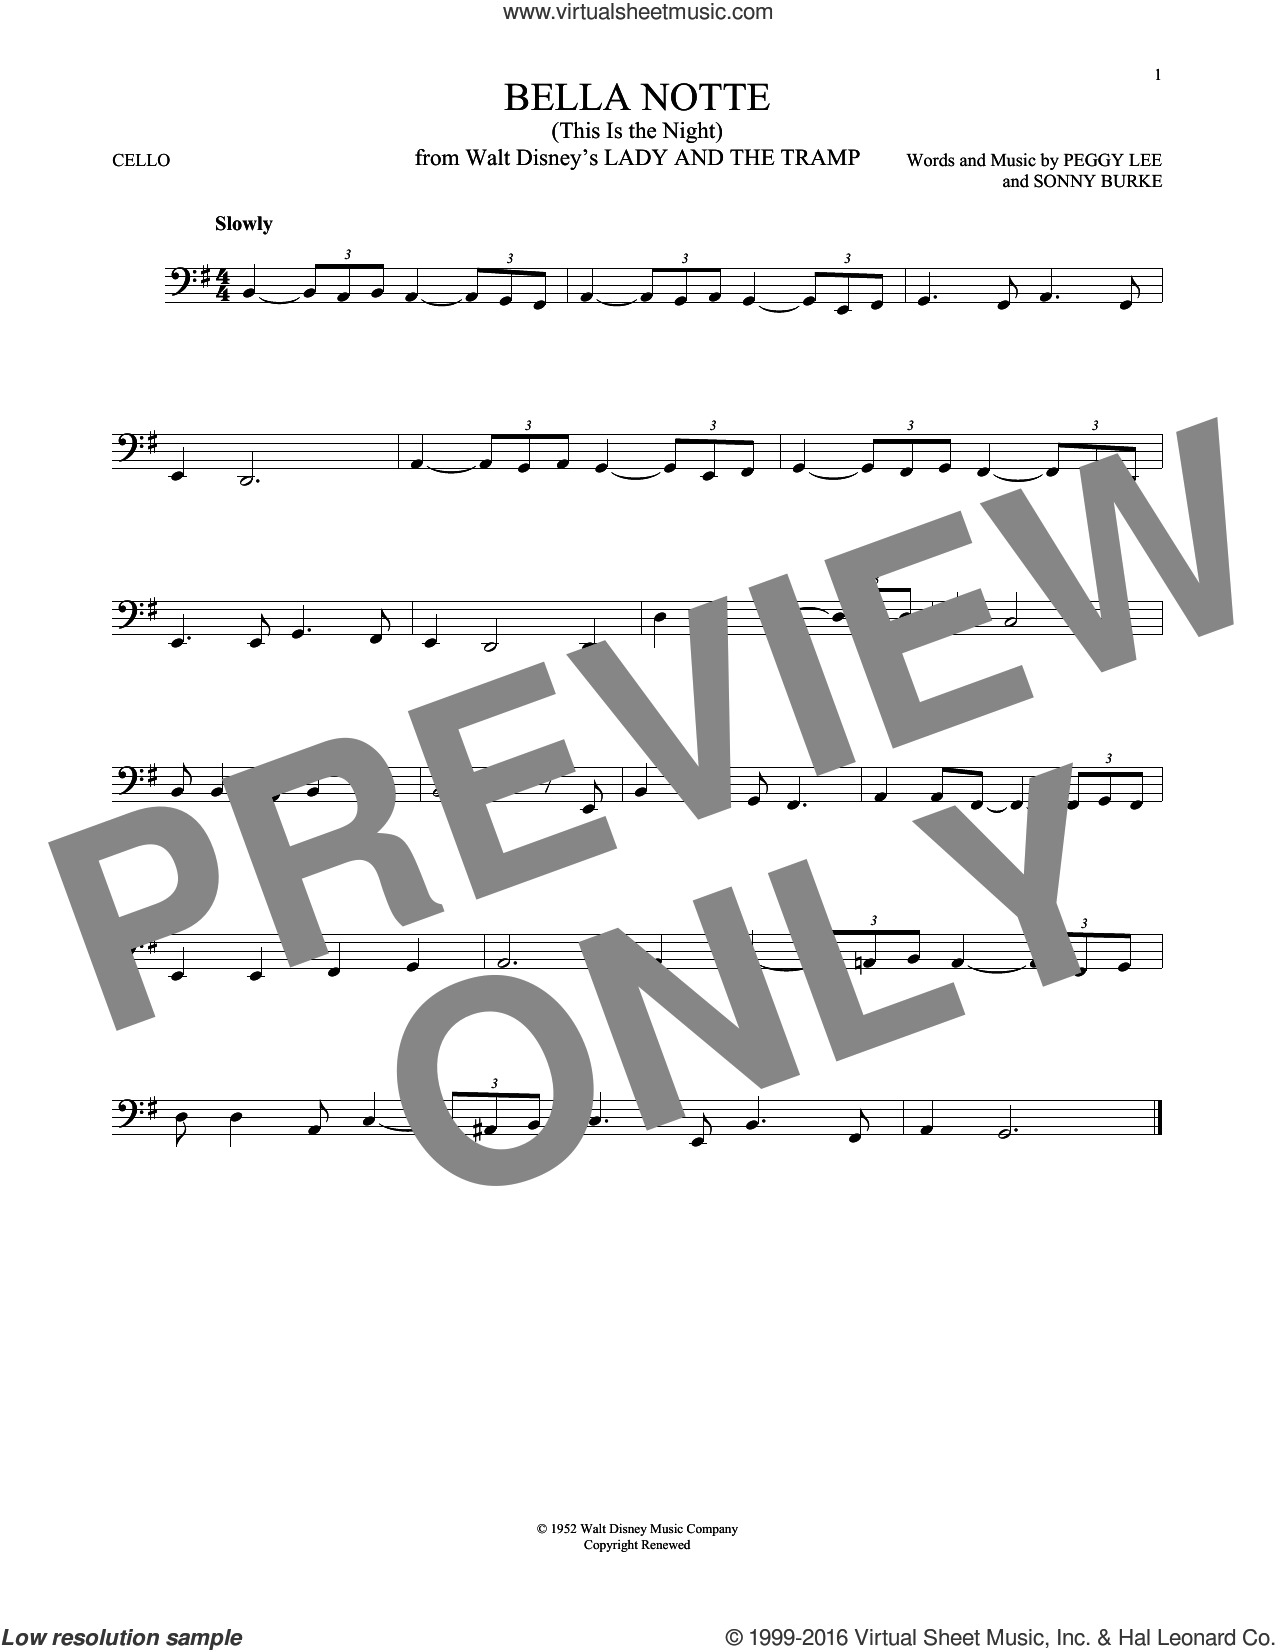 Bella Notte (from Lady And The Tramp) sheet music for cello solo by Peggy Lee, Peggy Lee & Sonny Burke and Sonny Burke, intermediate skill level